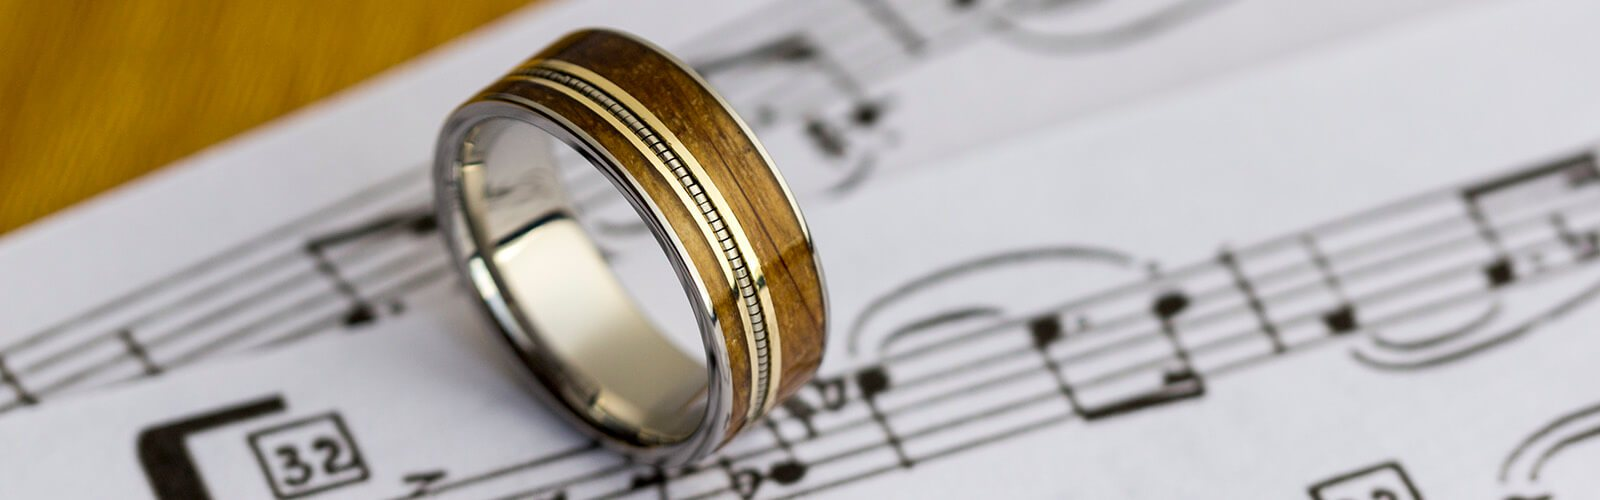 Rings for Musicians   Jewelry by Johan, Jewelry Re-Imagined